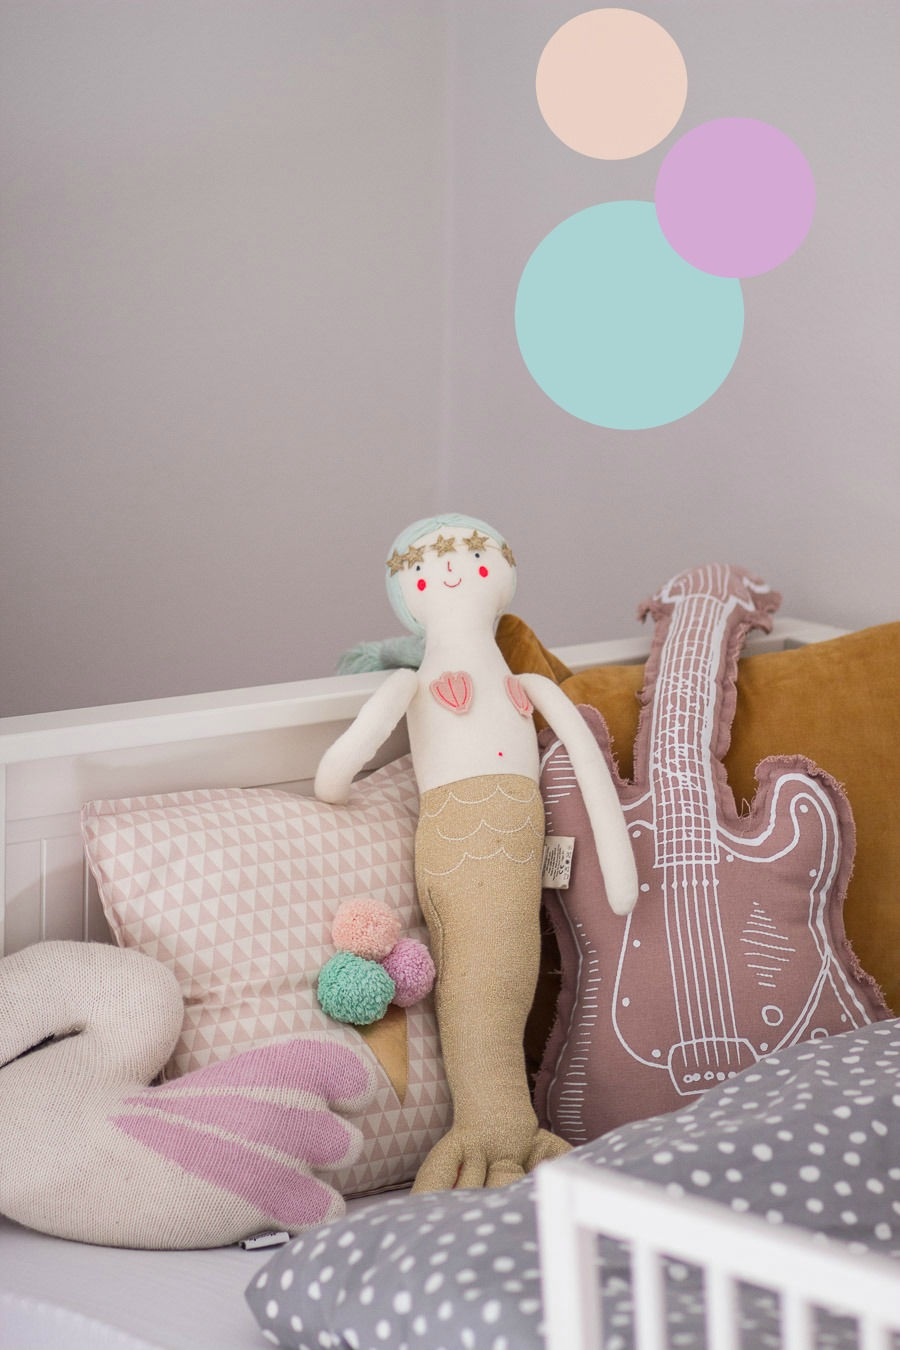 Inspiration kinderzimmer accessoires mother 39 s finest - Inspiration kinderzimmer ...